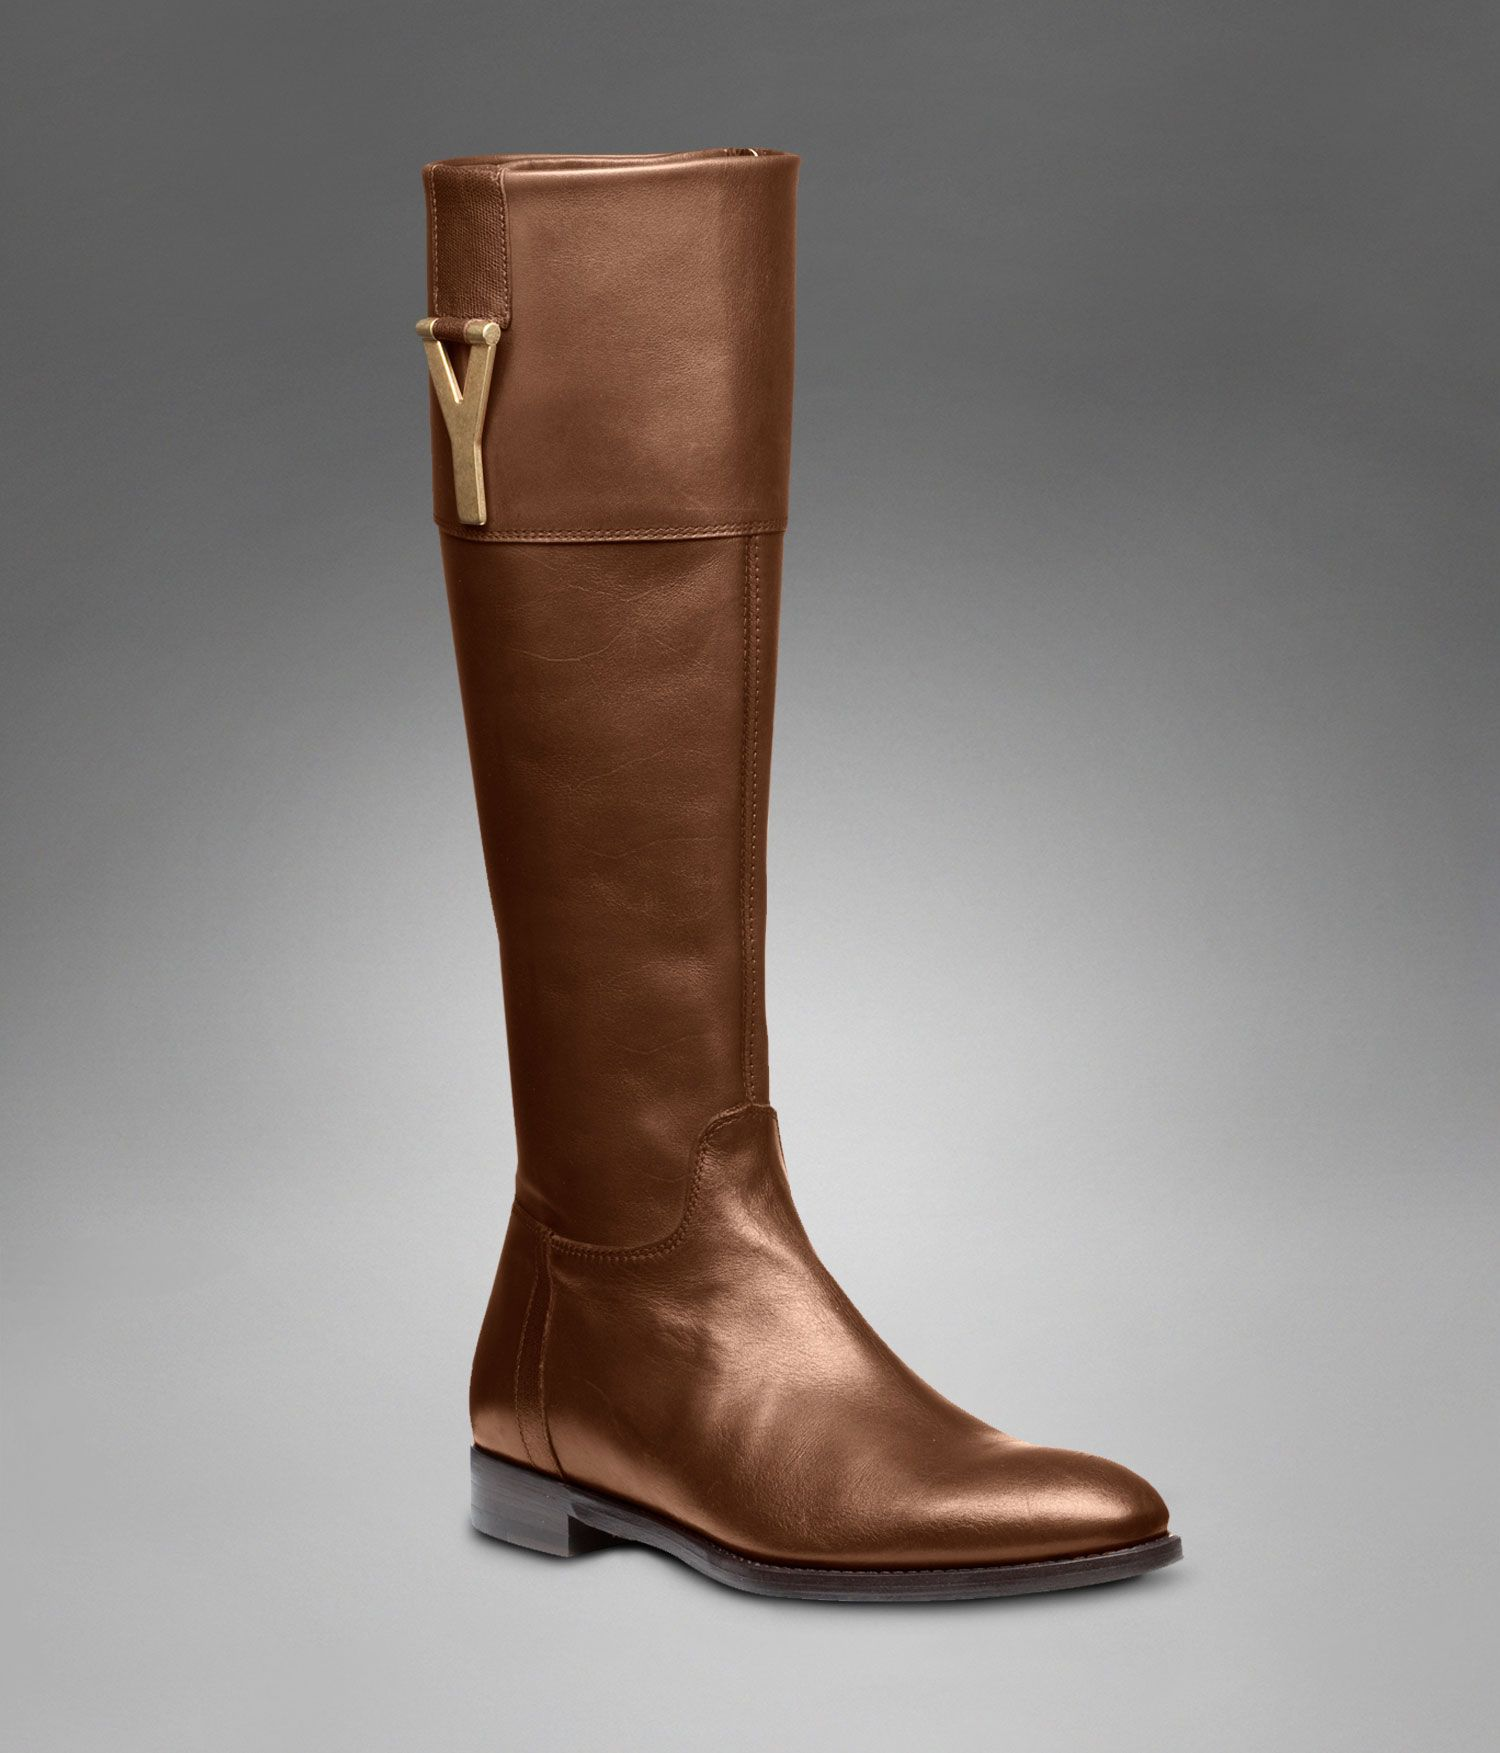 31f50f8ff41 YSL Chyc Riding Boot in Brown Textured Leather - Flats – Shoes – Women – Yves  Saint Laurent – www.ysl.com